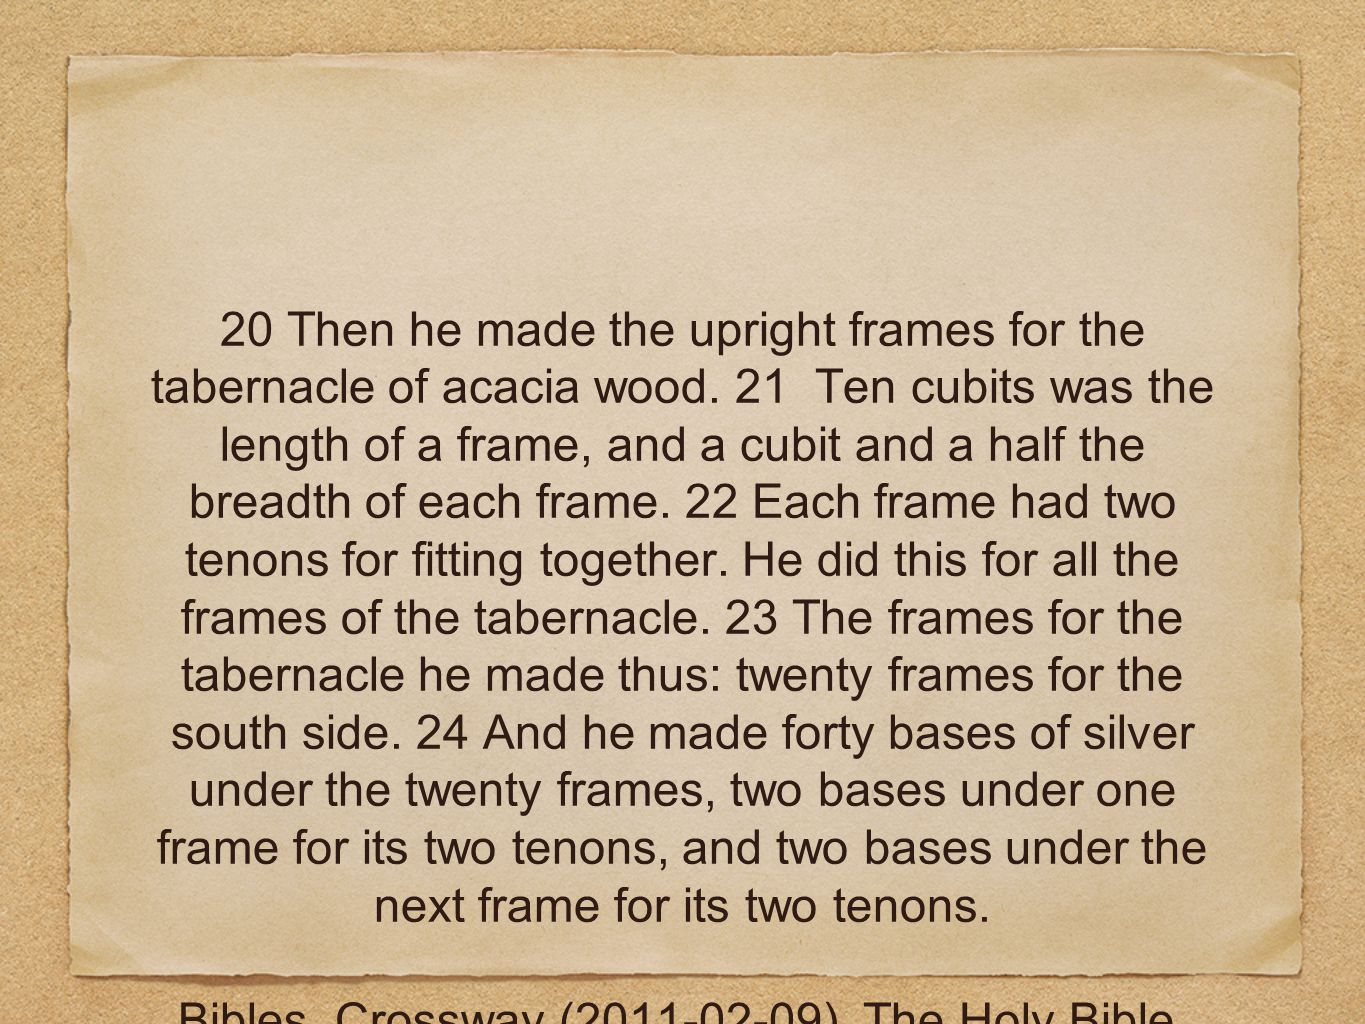 20 Then he made the upright frames for the tabernacle of acacia wood.